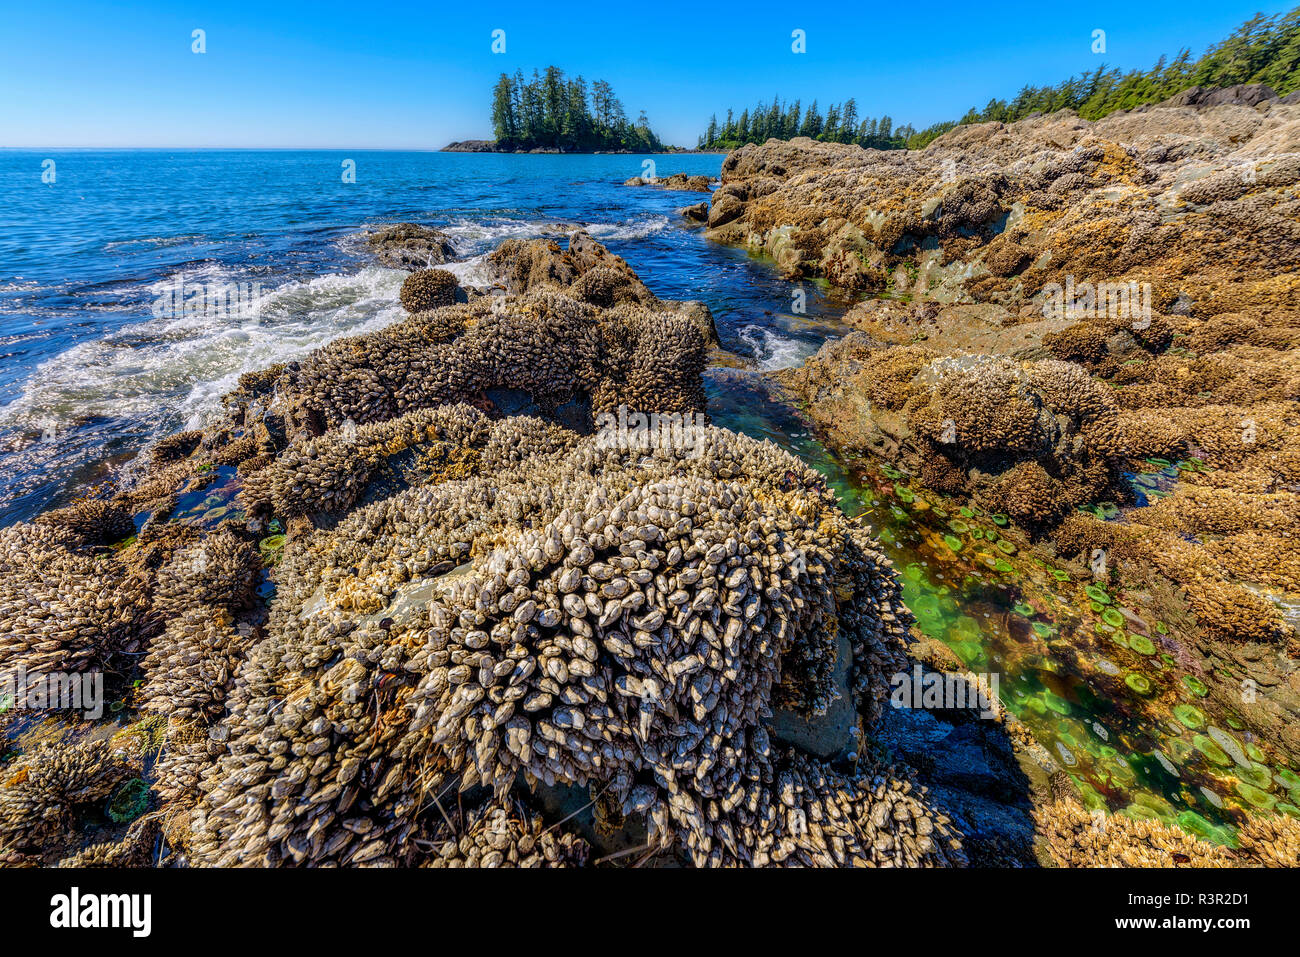 Rocks at low tide, covered with mussels and anatifes., Pacific Rim, South Tofino, Vancouver Island, British Columbia, Canada Stock Photo